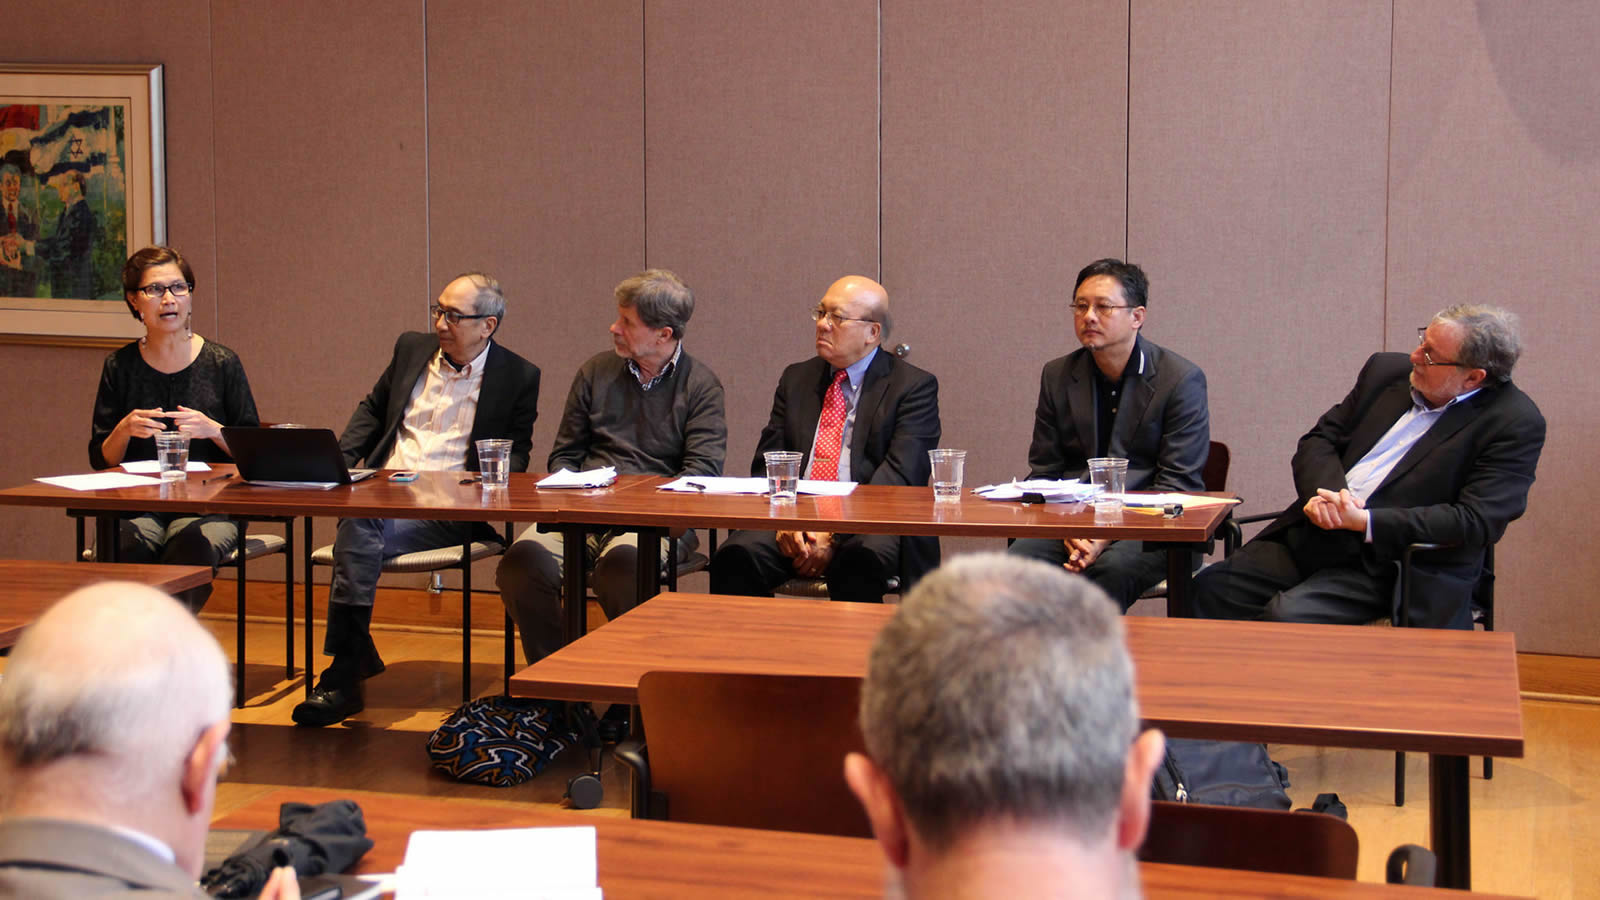 Other panelists listen as Gemma Cruz discusses the future of the Catholic Church in the Asian-Pacific region.